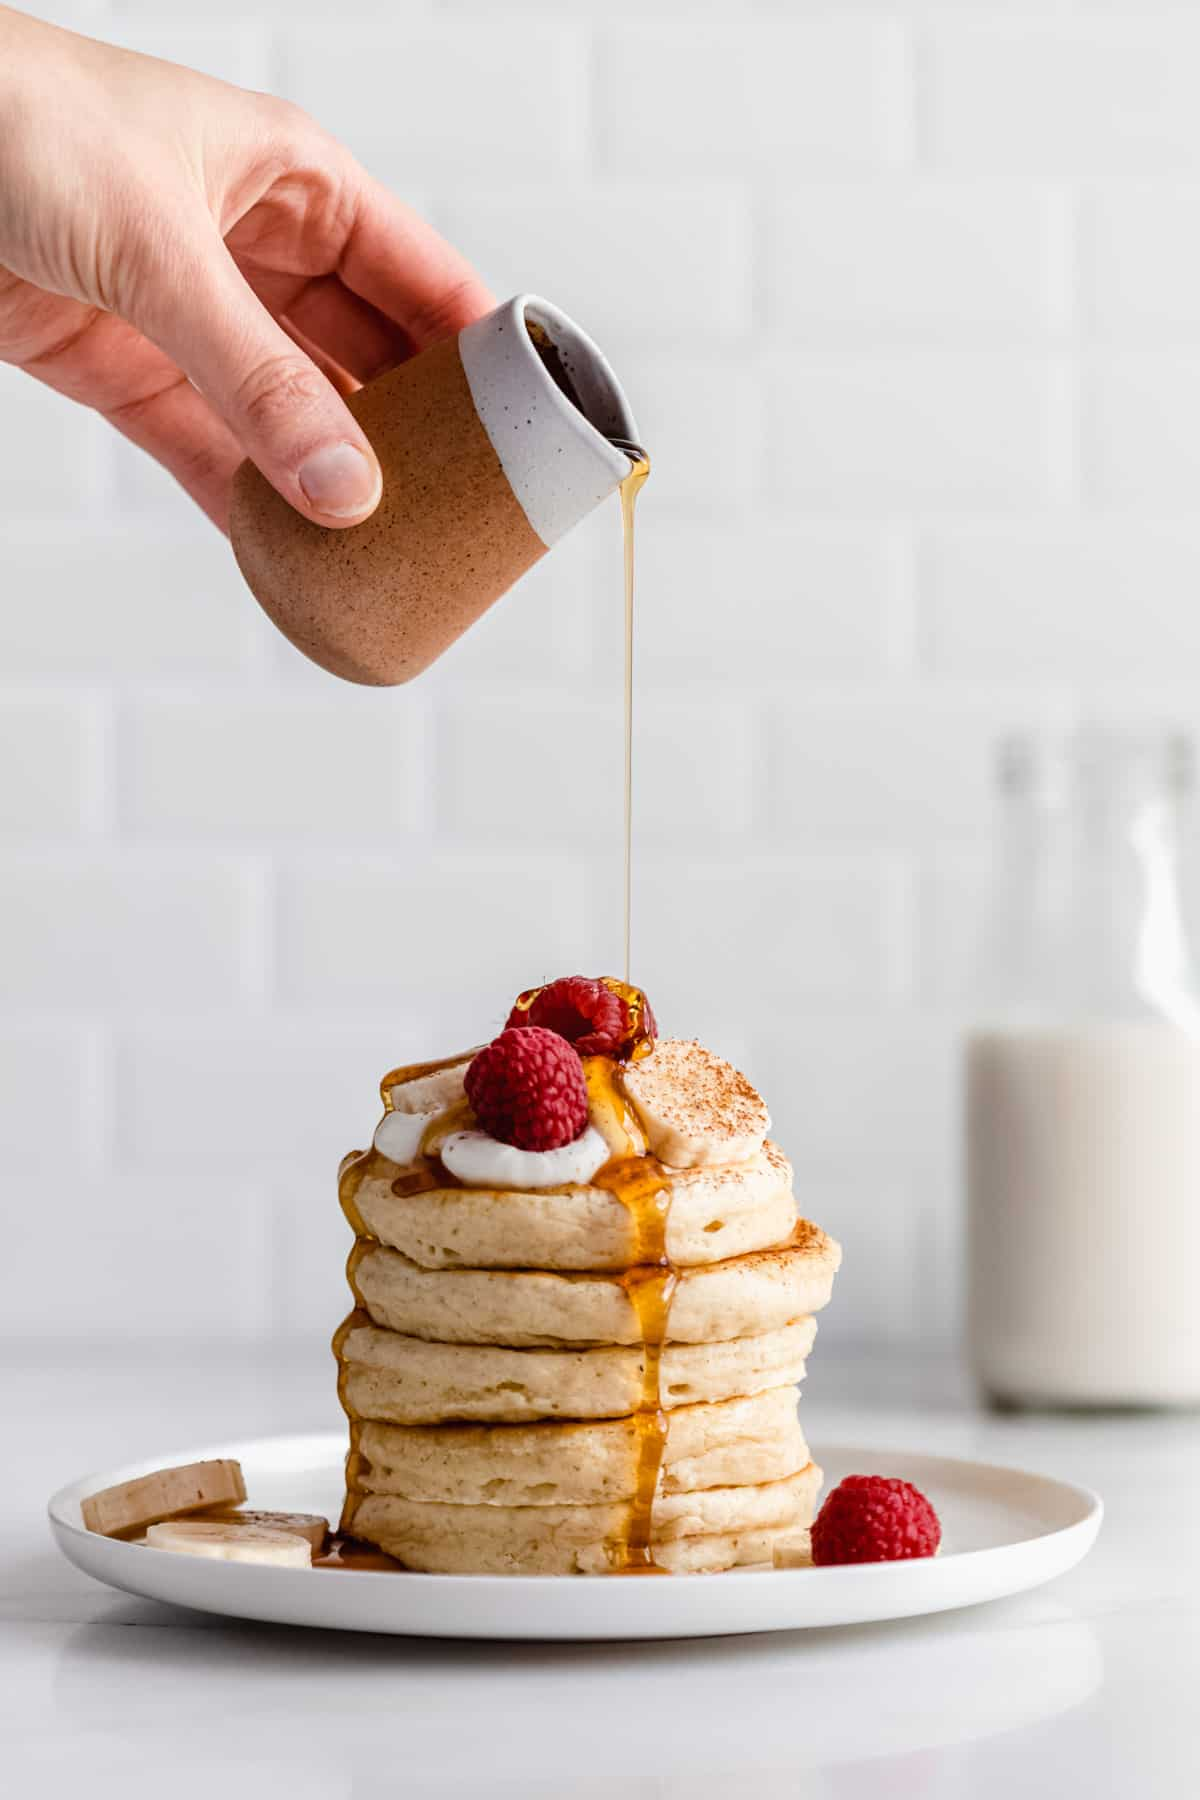 a hand pouring maple syrup onto a stack of vegan oatmeal pancakes